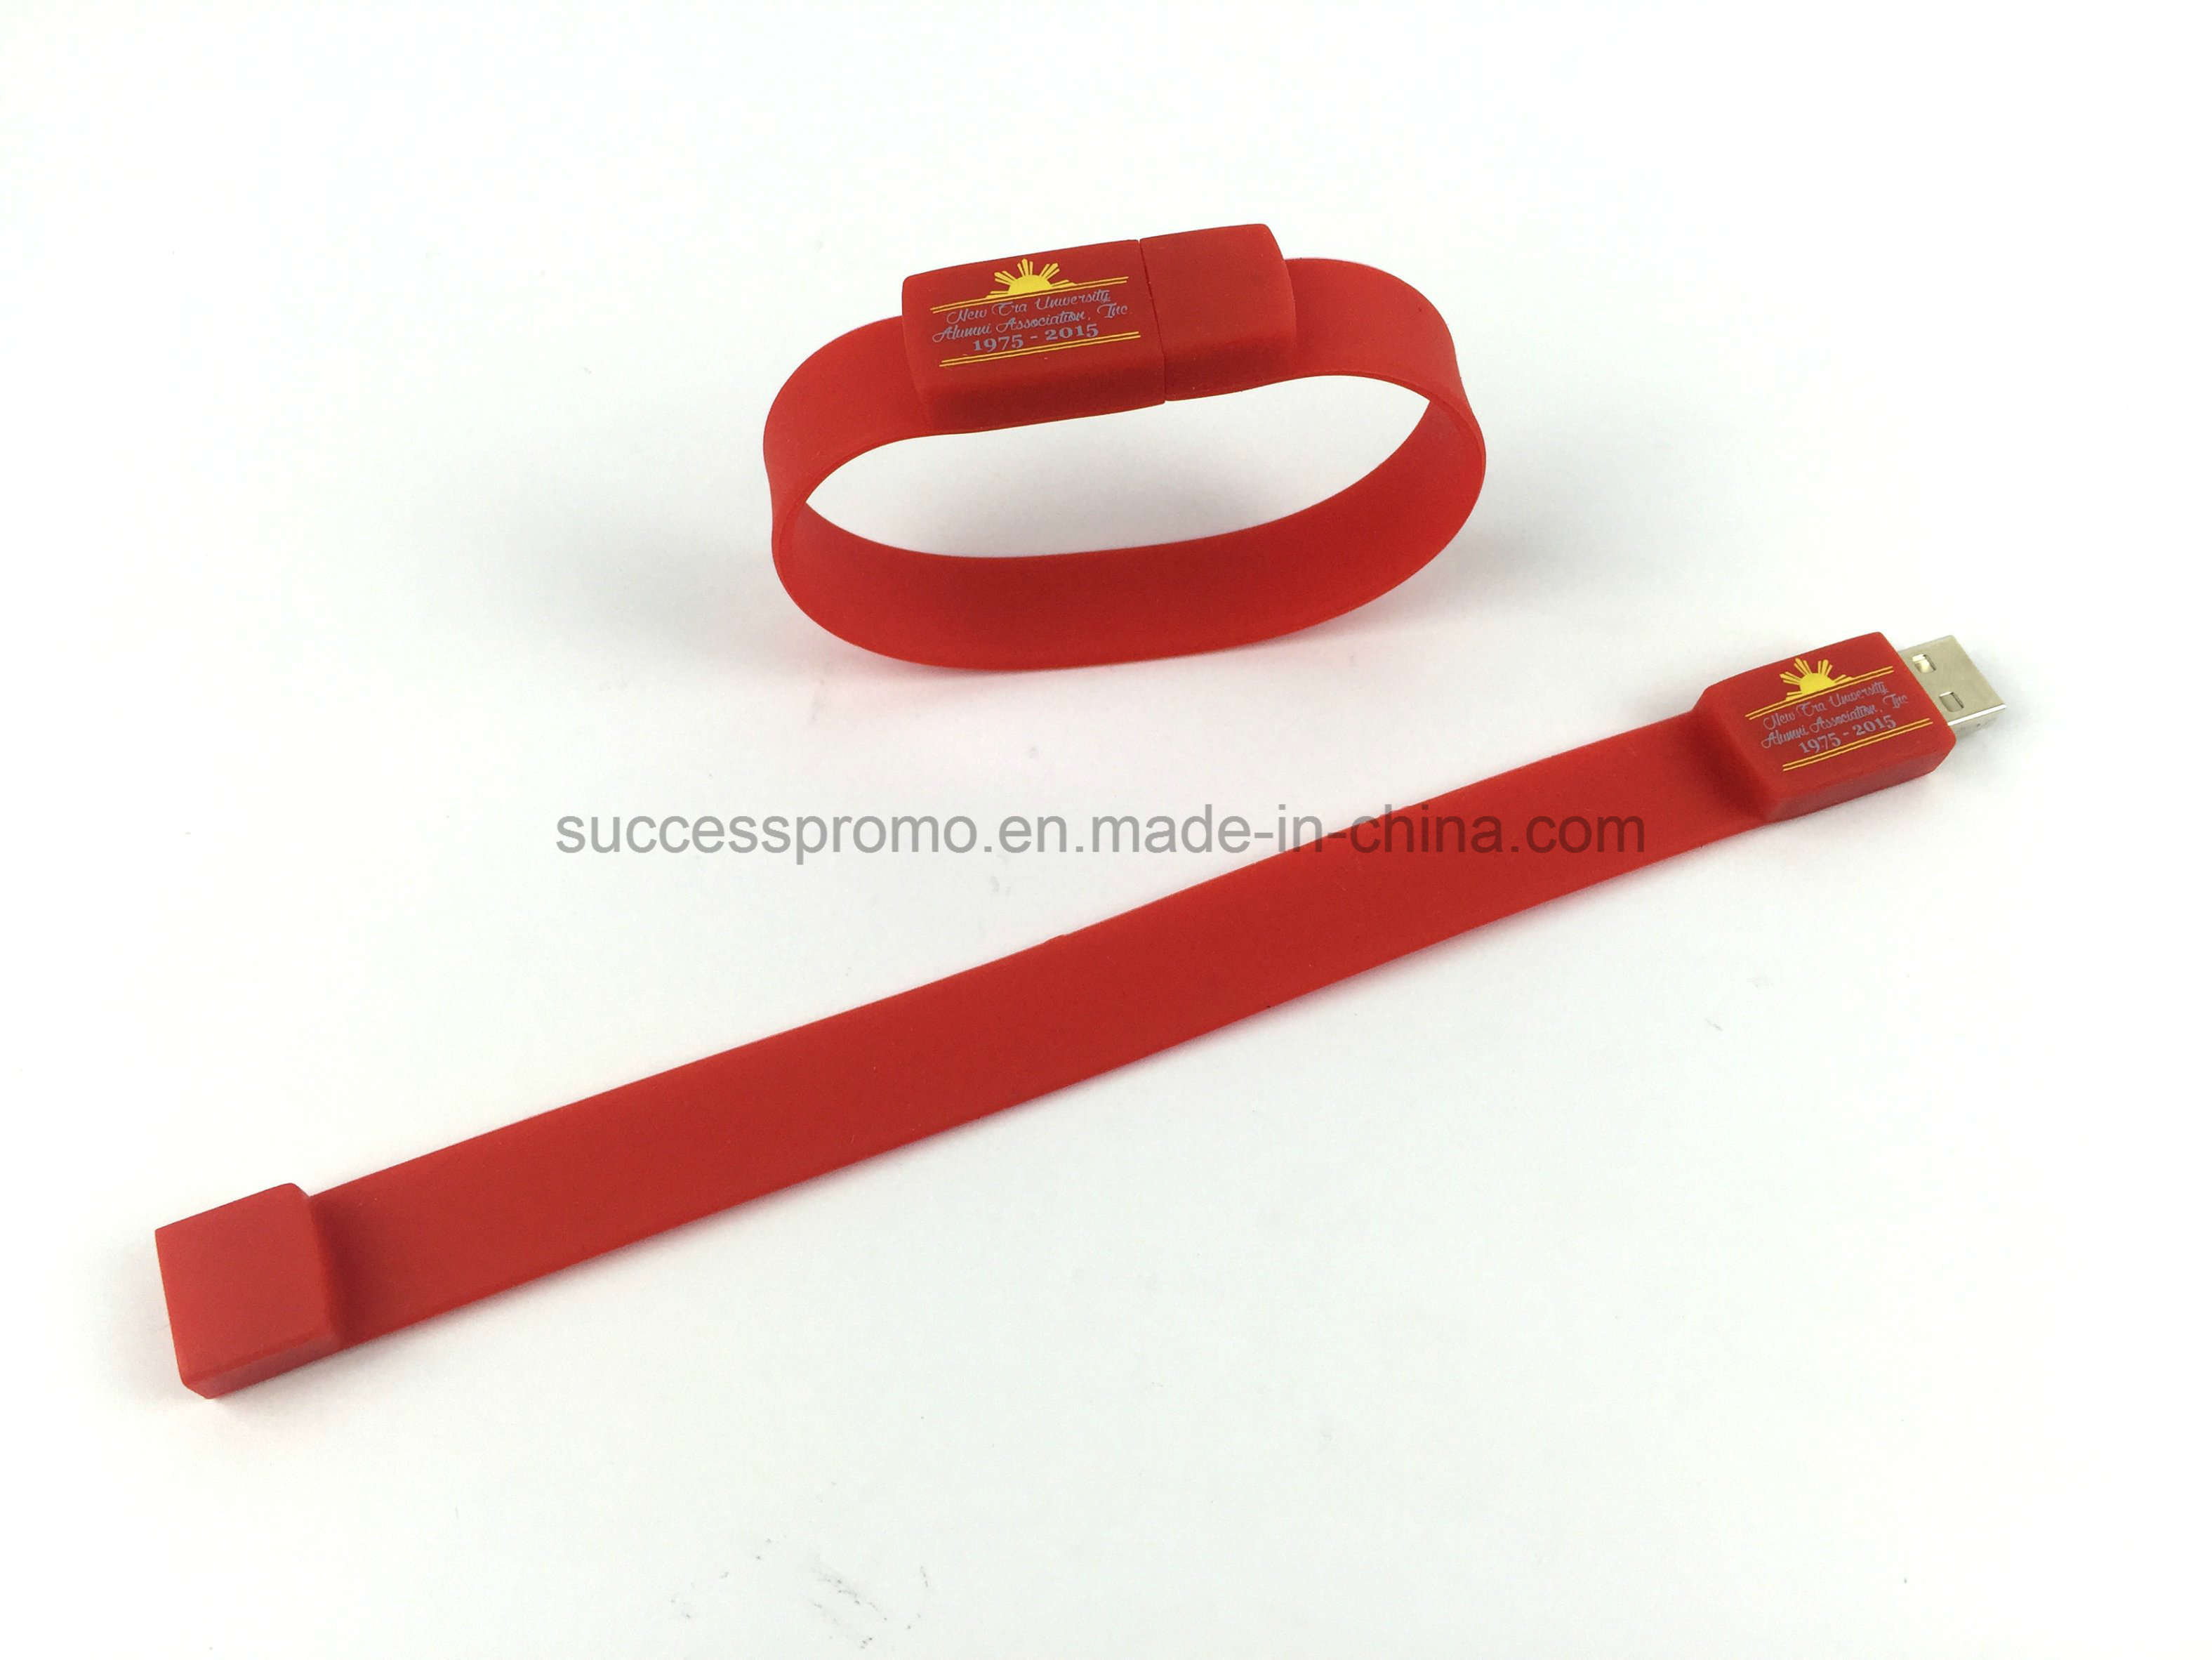 2017 Promotional Waterproof Silicone Bracelet USB Flash Drive